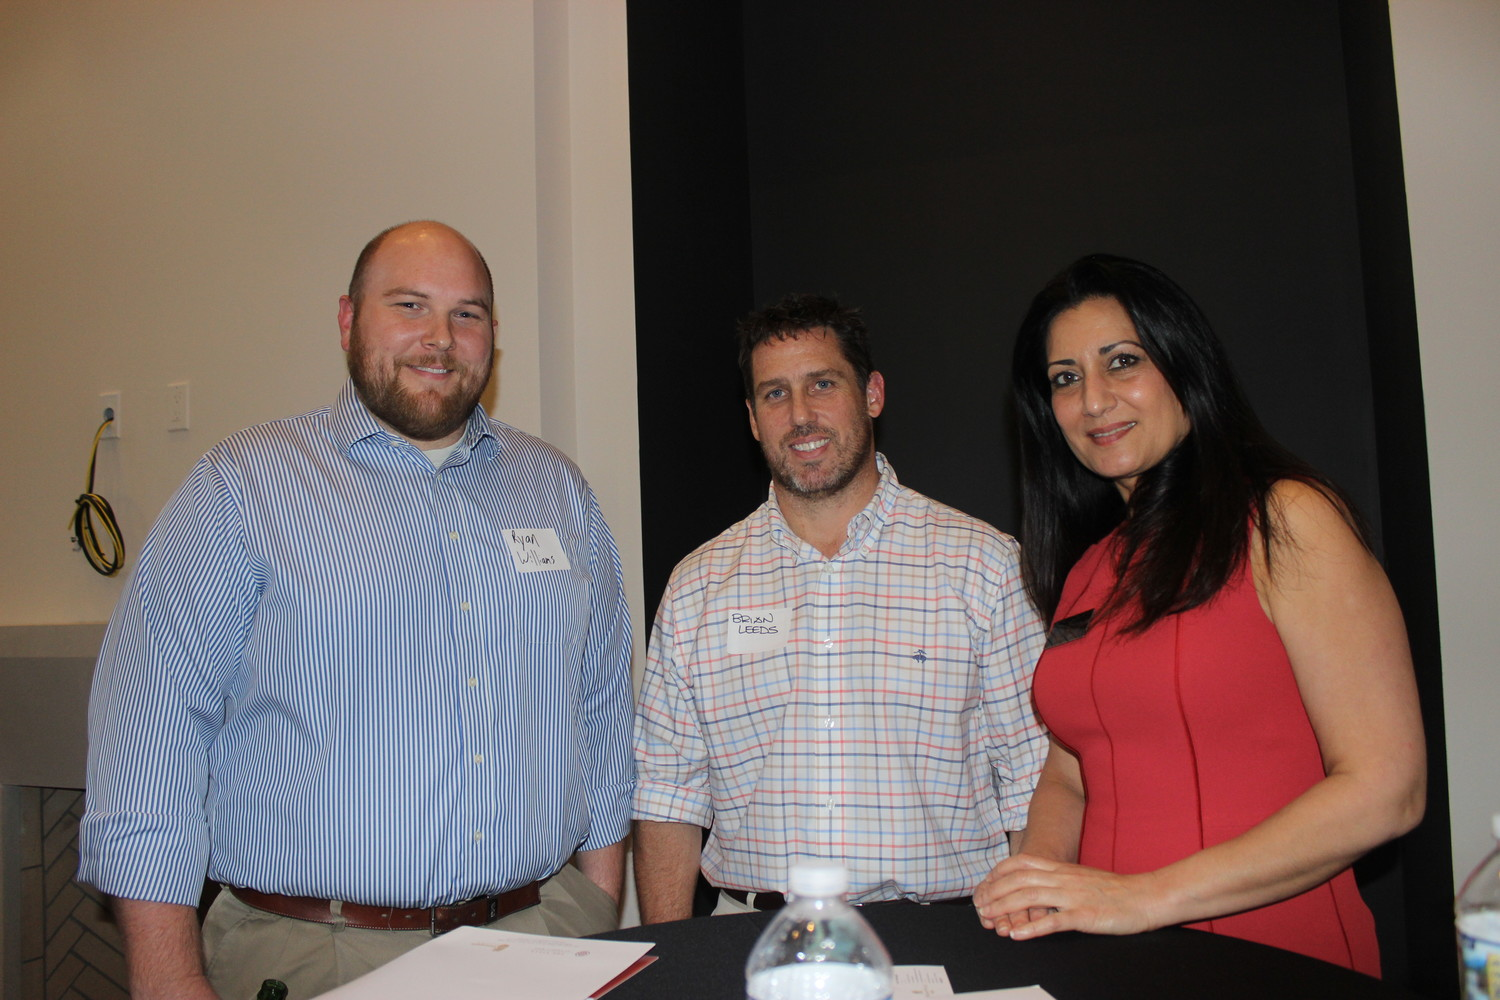 Ryan Williams, Brian Leeds and Nahid Sabet